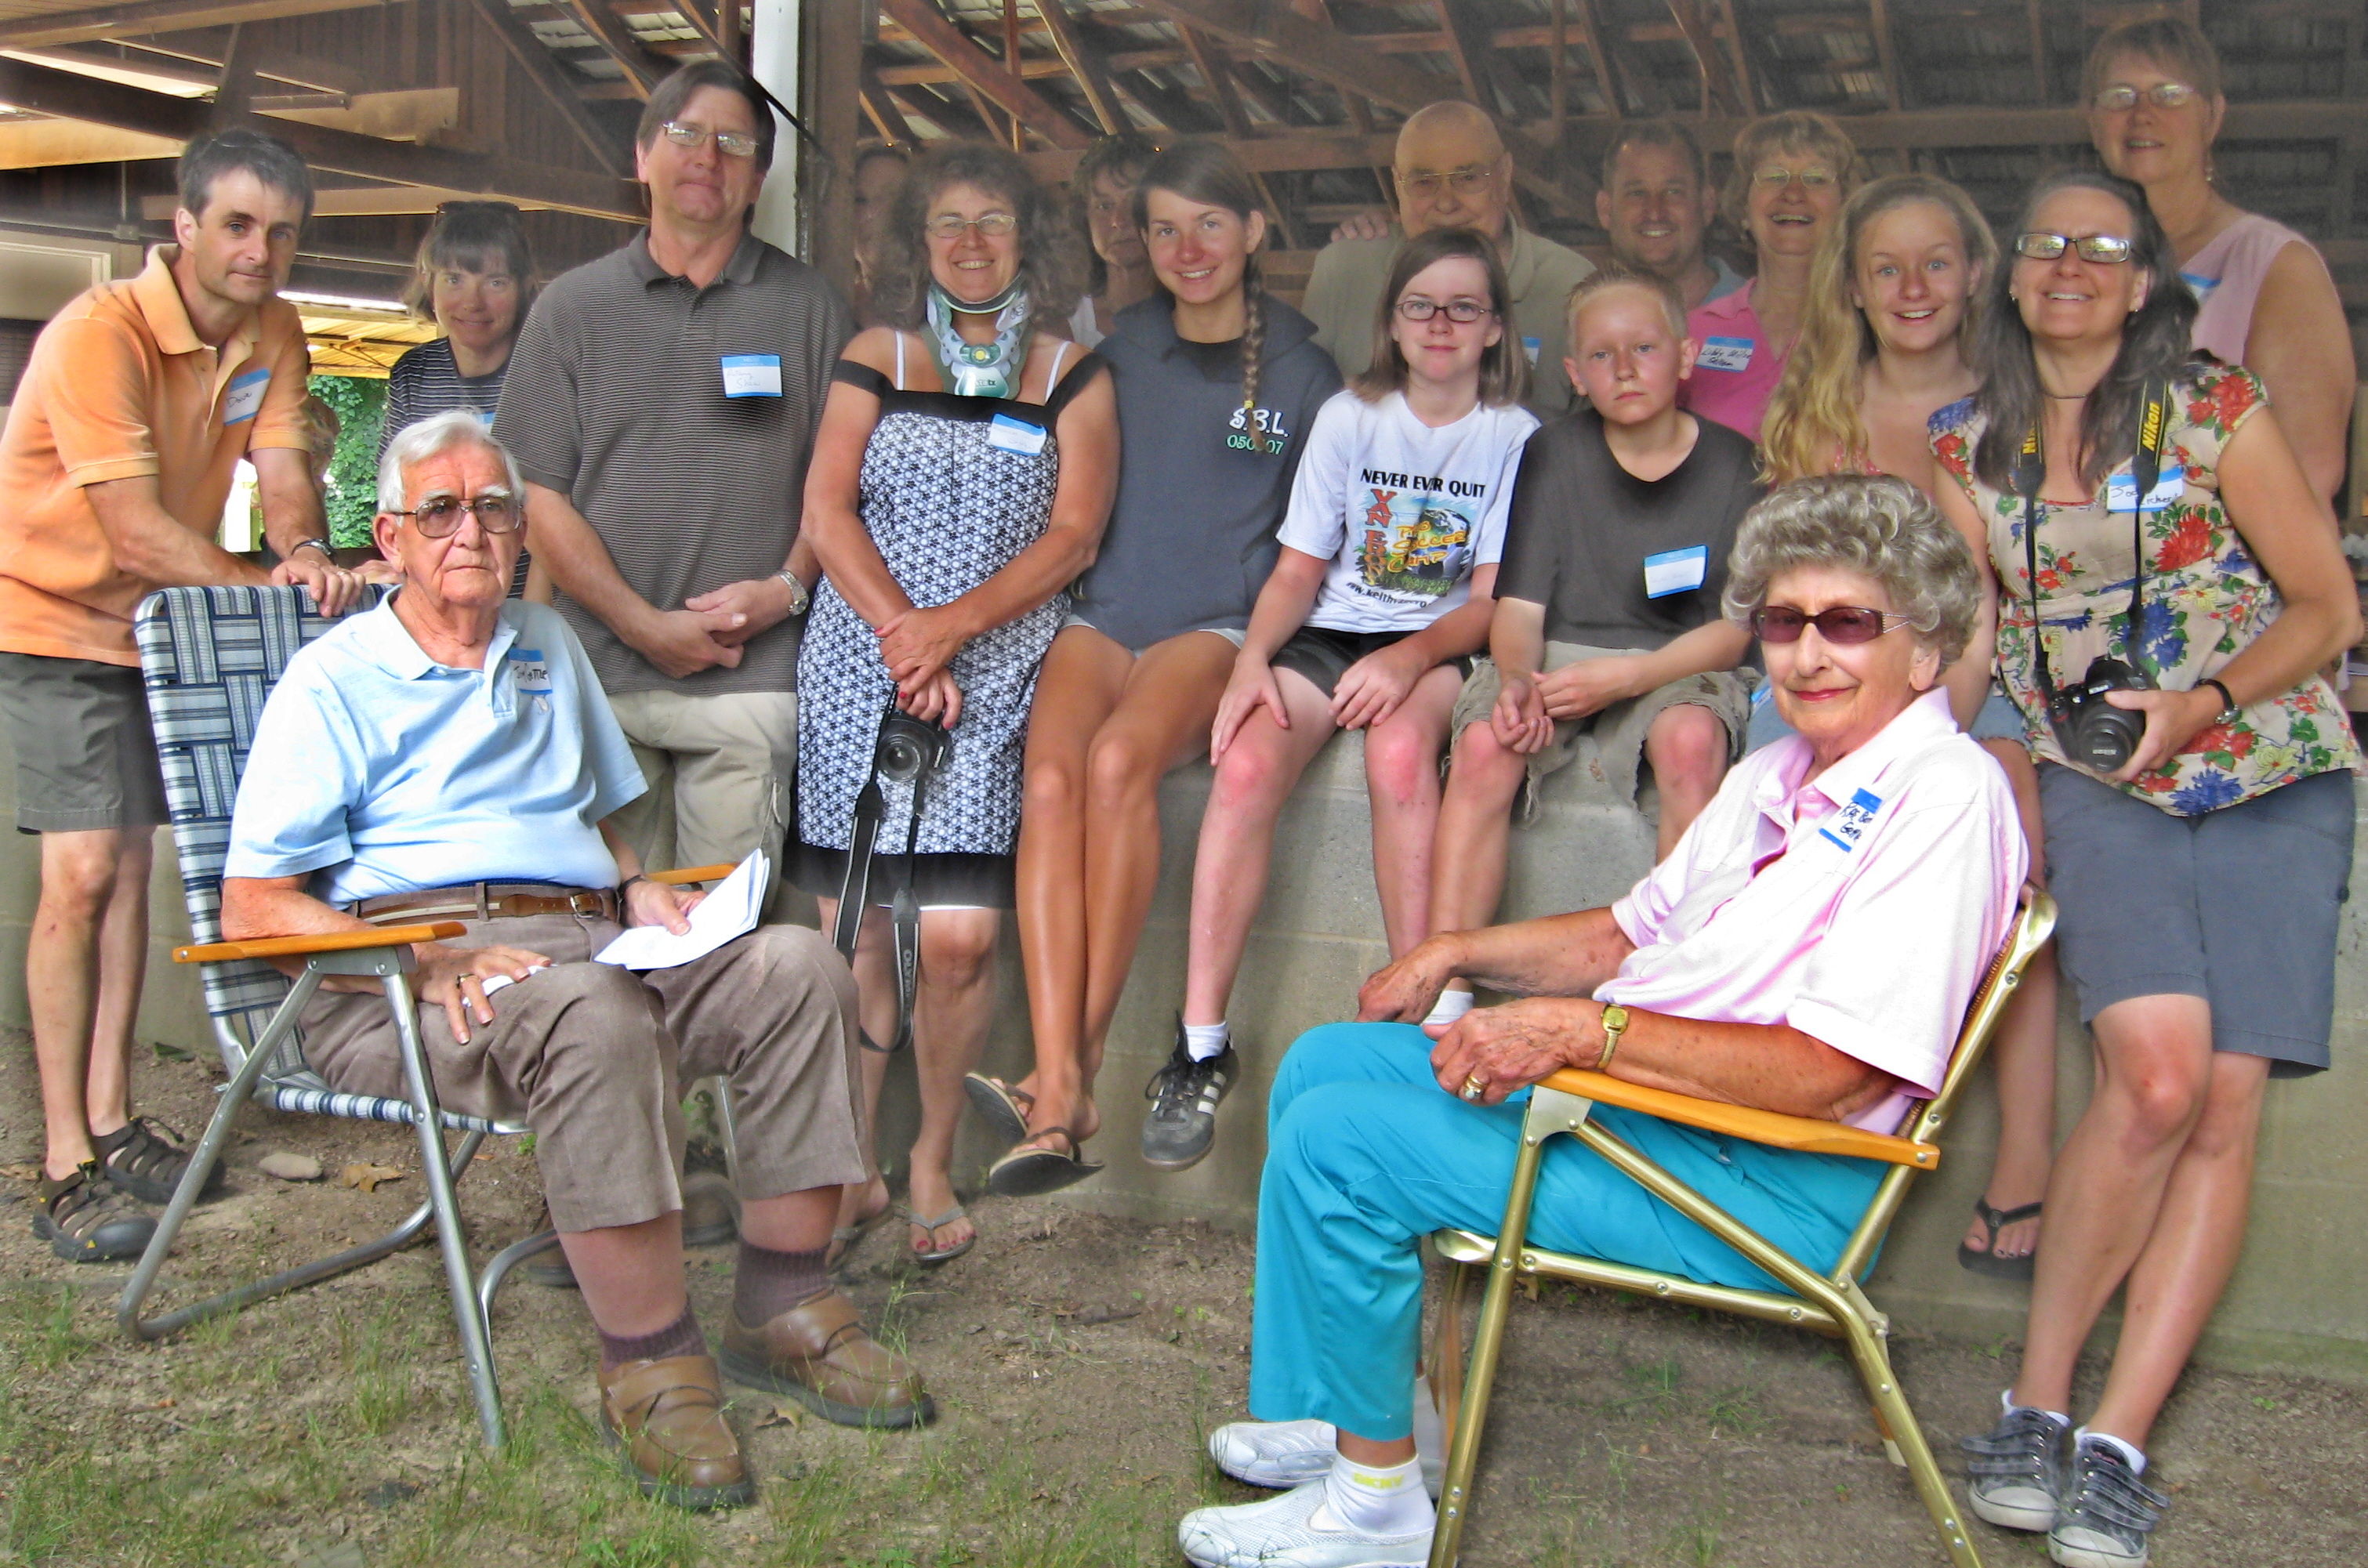 Patrick Family Reunion Druck Family Reunion